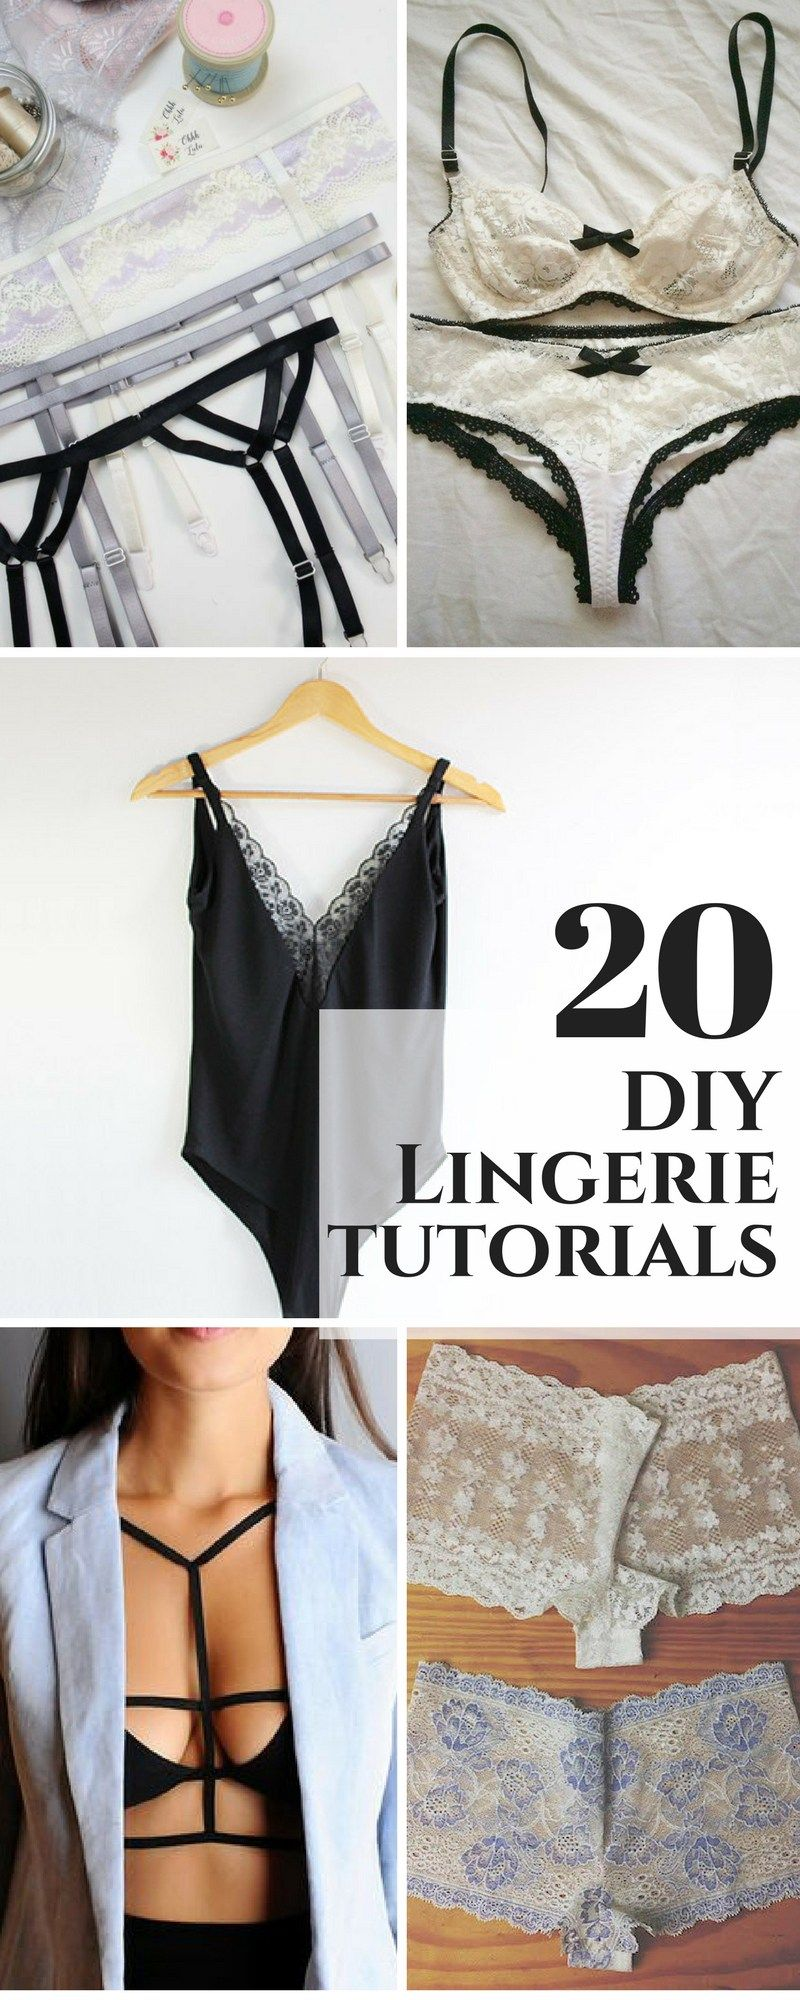 15 DIY Lingerie, Bras, and Panties to Try in 2019 - Creative Fashion Blog -   19 diy Clothes tutorial ideas